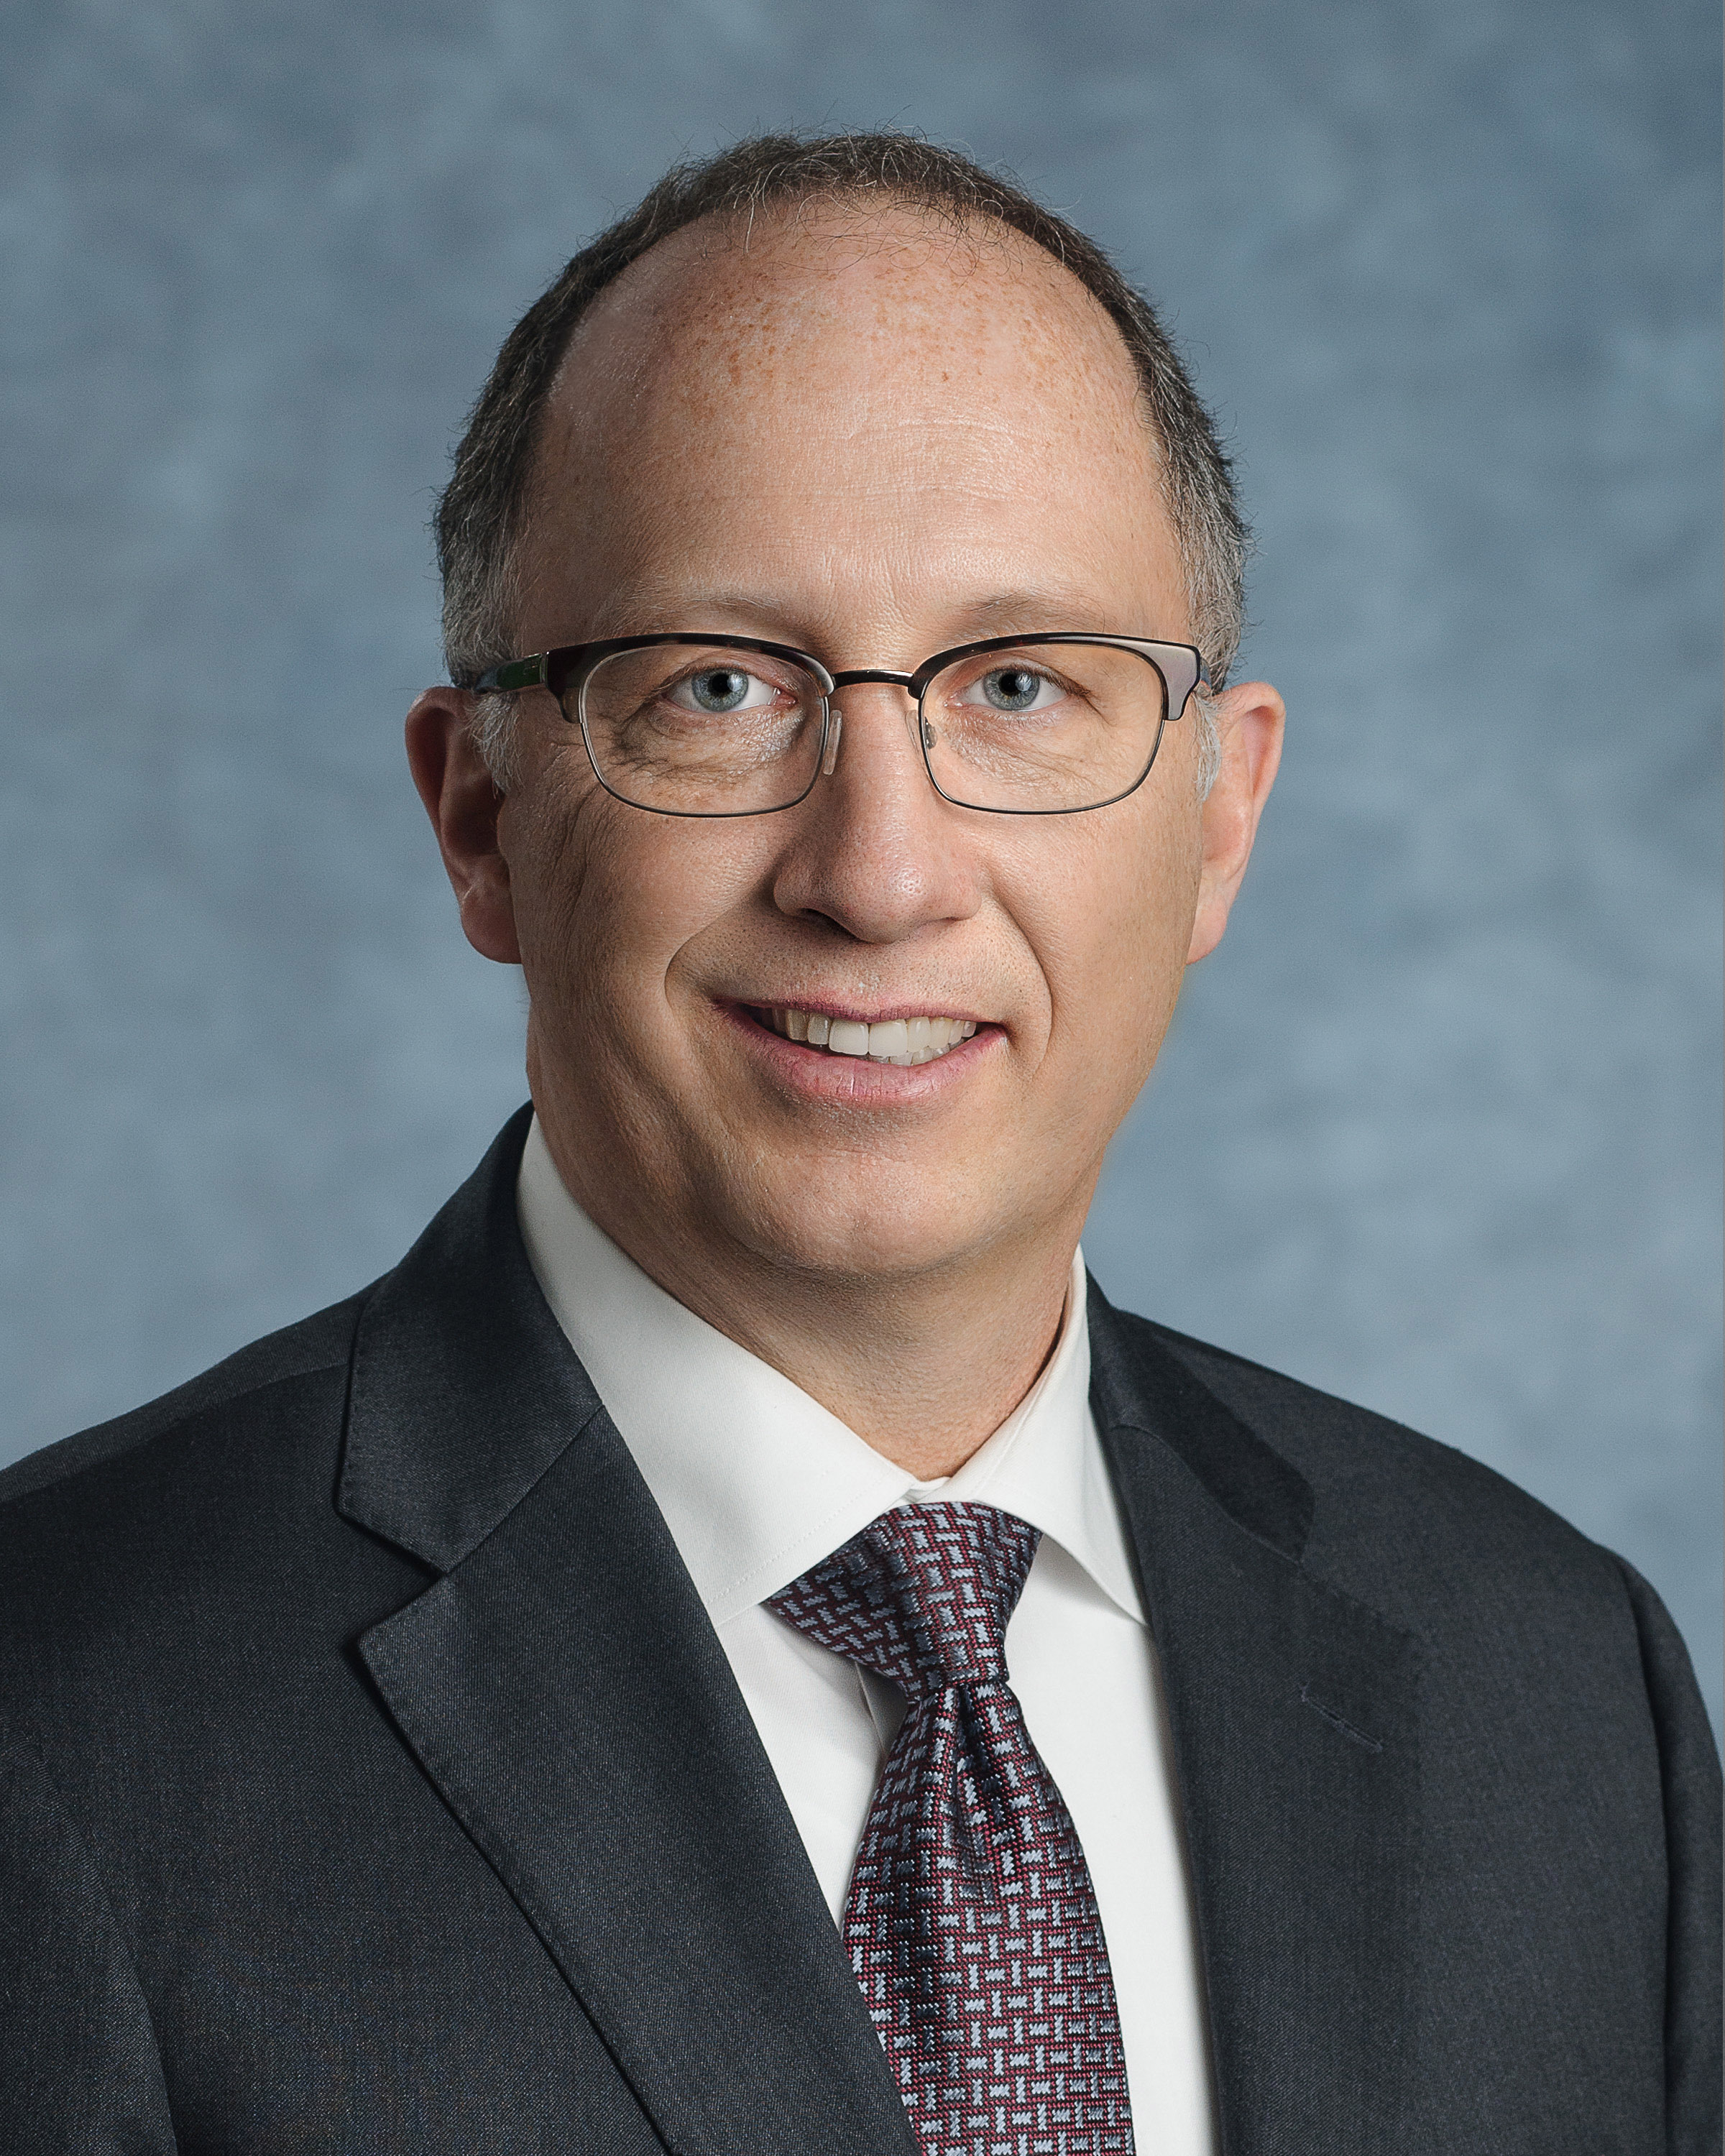 Christopher M. Hilger, Securian Financial Group President, Chief Executive Officer and Chair of the Board (Photo: Business Wire).